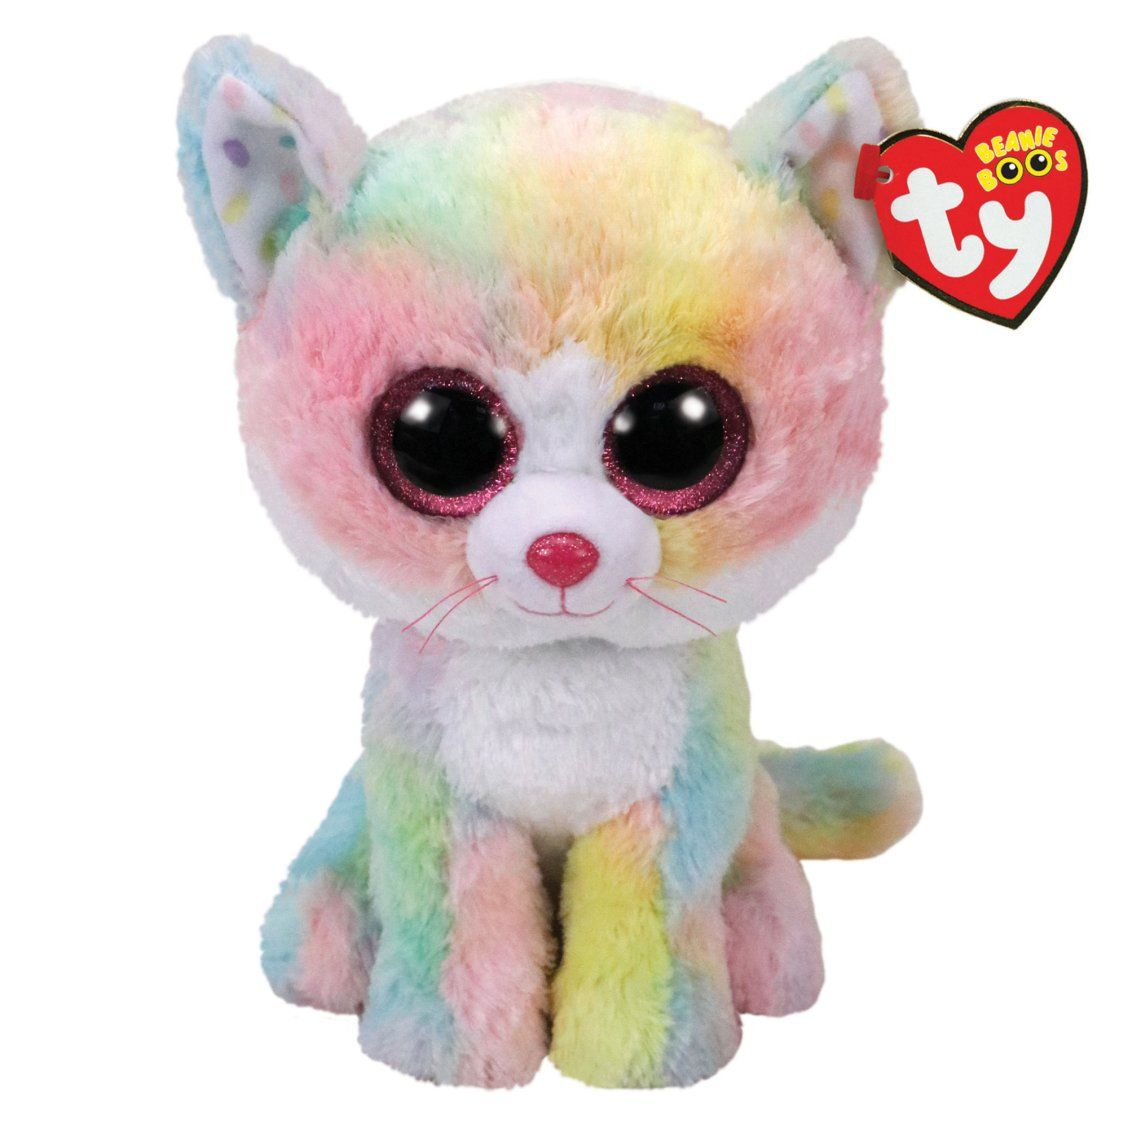 Ty Beanie Boo Medium Fluffy the Cat Plush Toy  4d7c9c5215d5